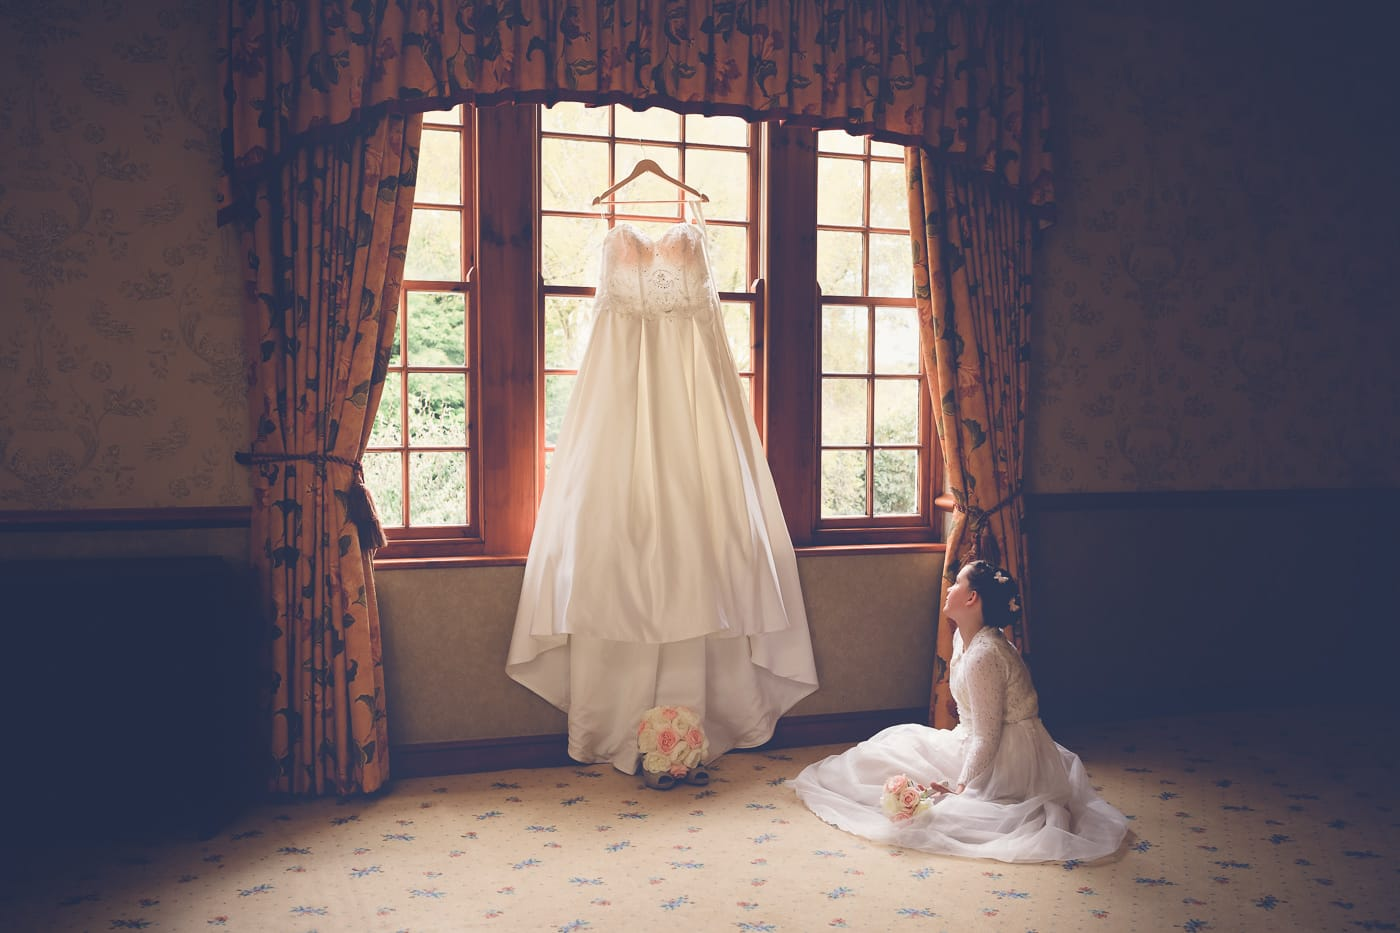 Young girl looking at the bridal dress